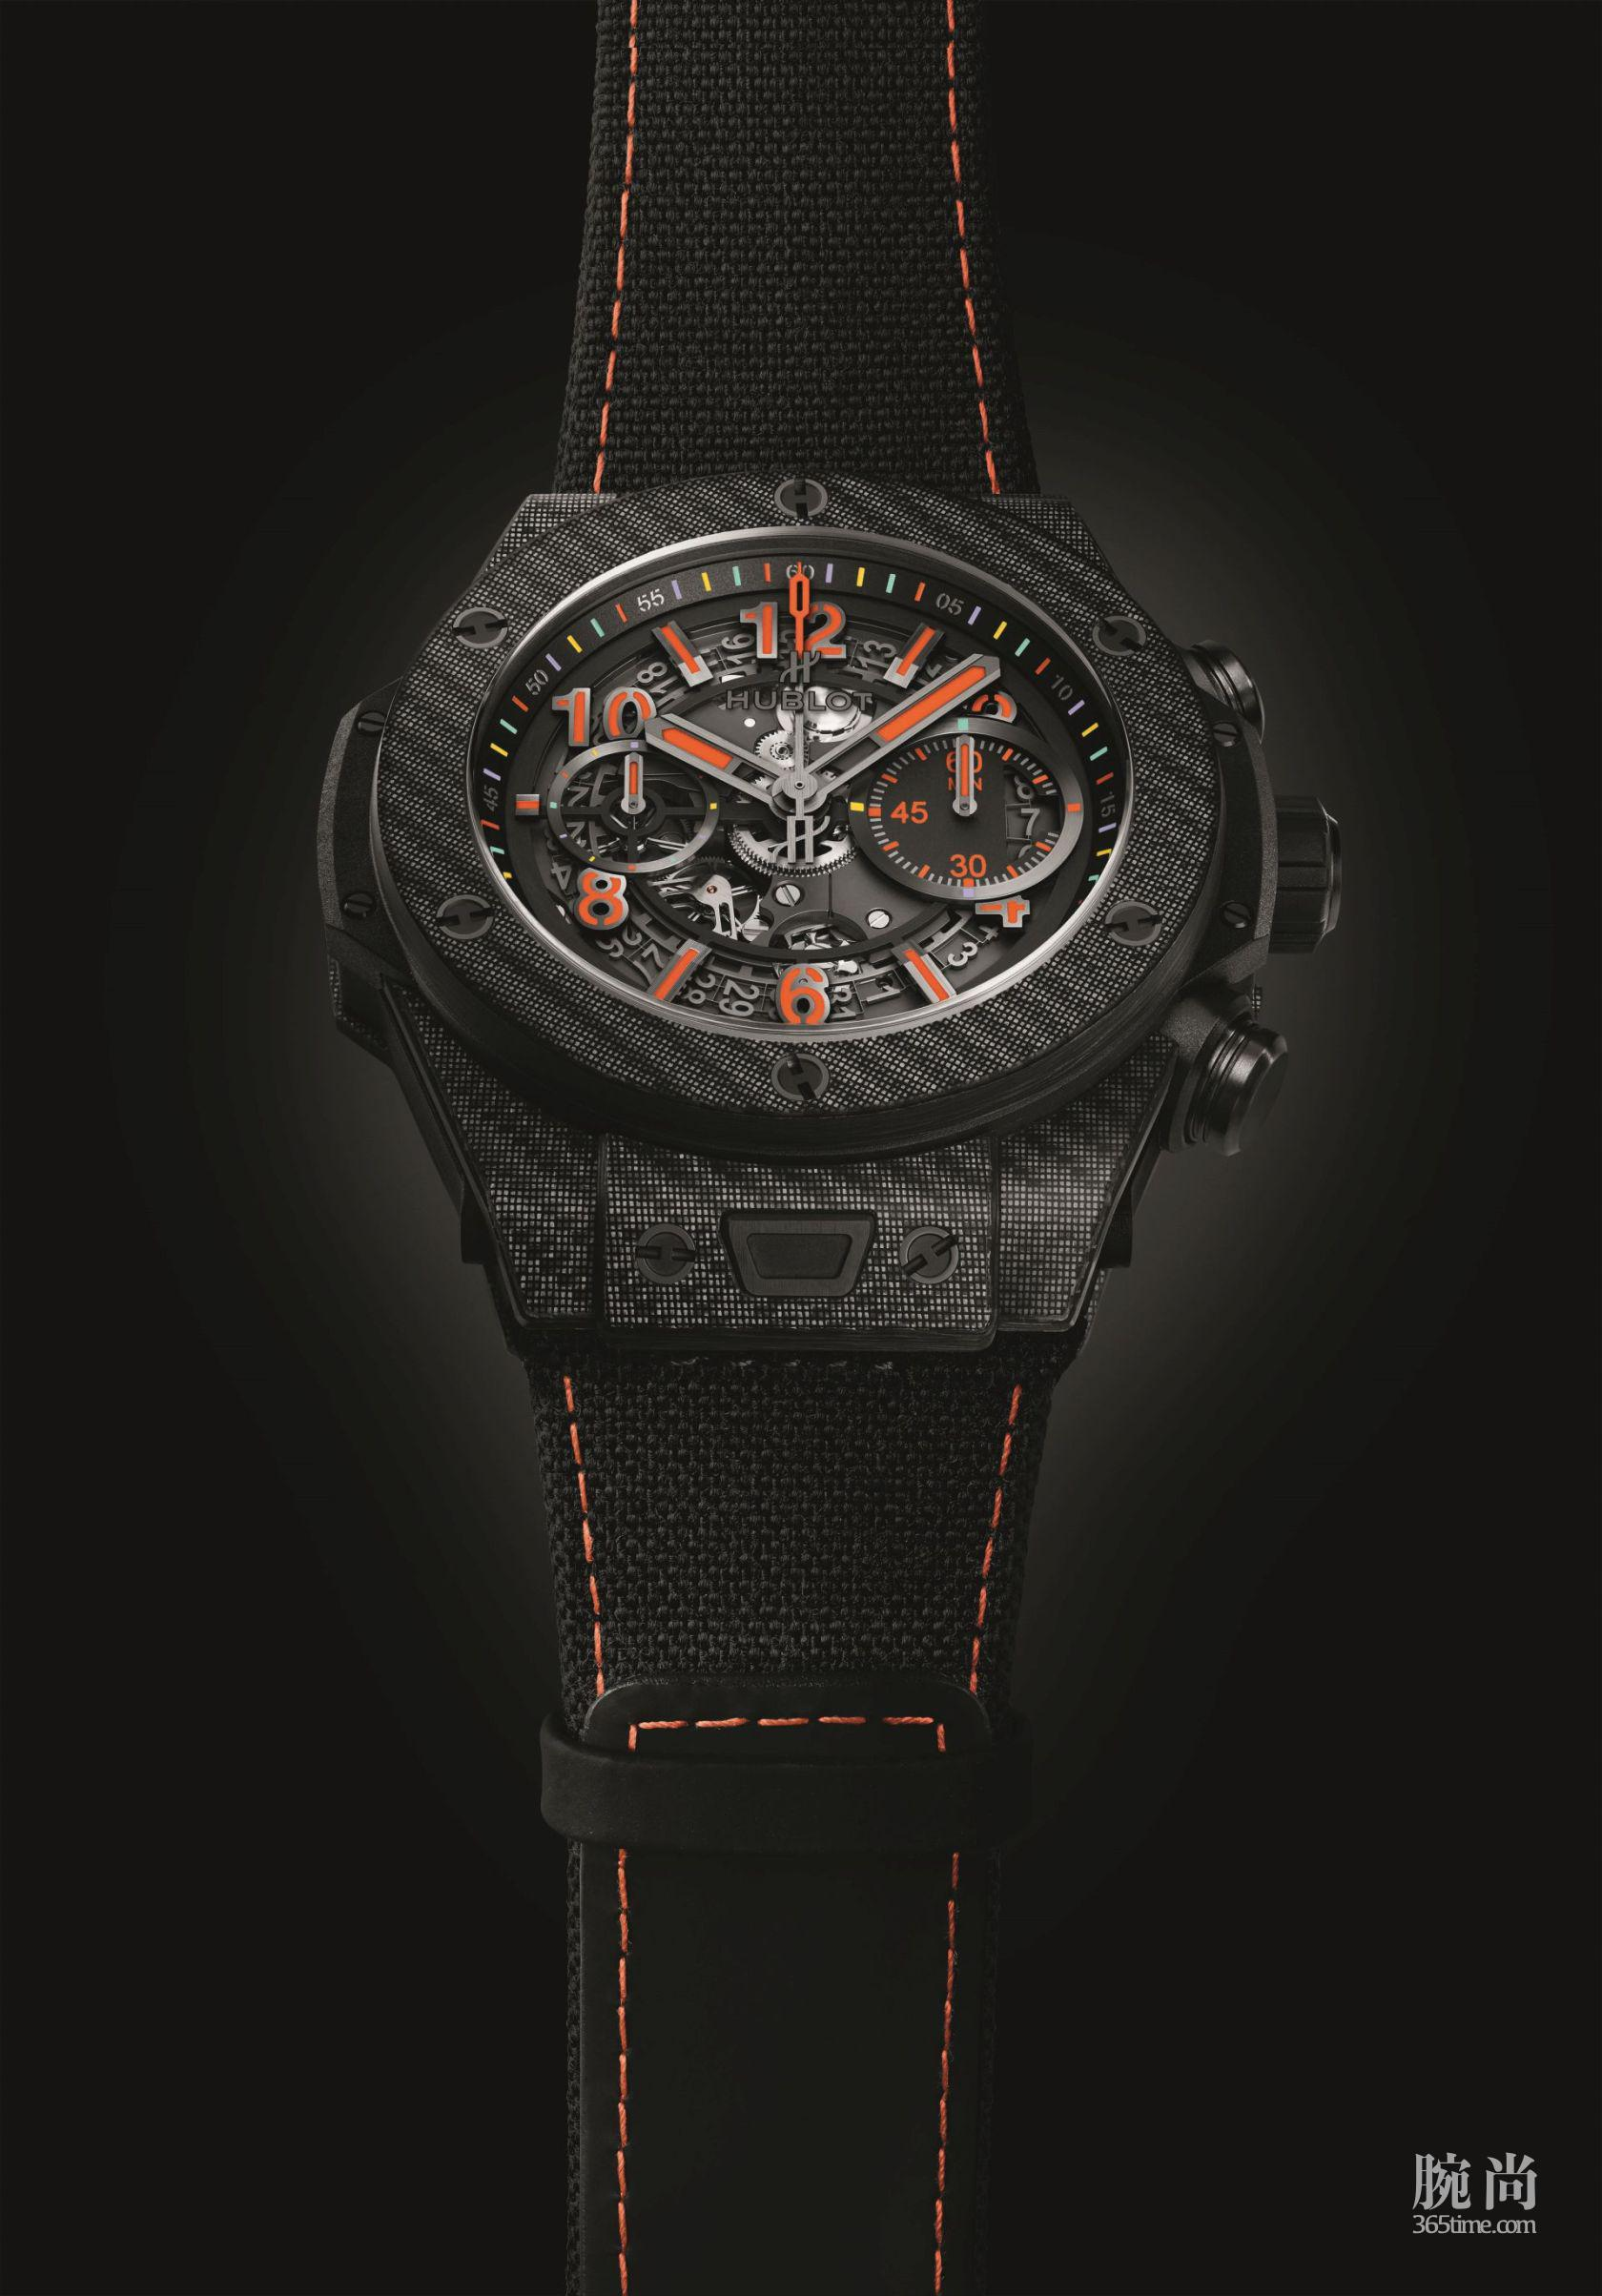 Hublot-Big-Bang-Unico-Best-Buddies-Limited-Edition-2.jpg